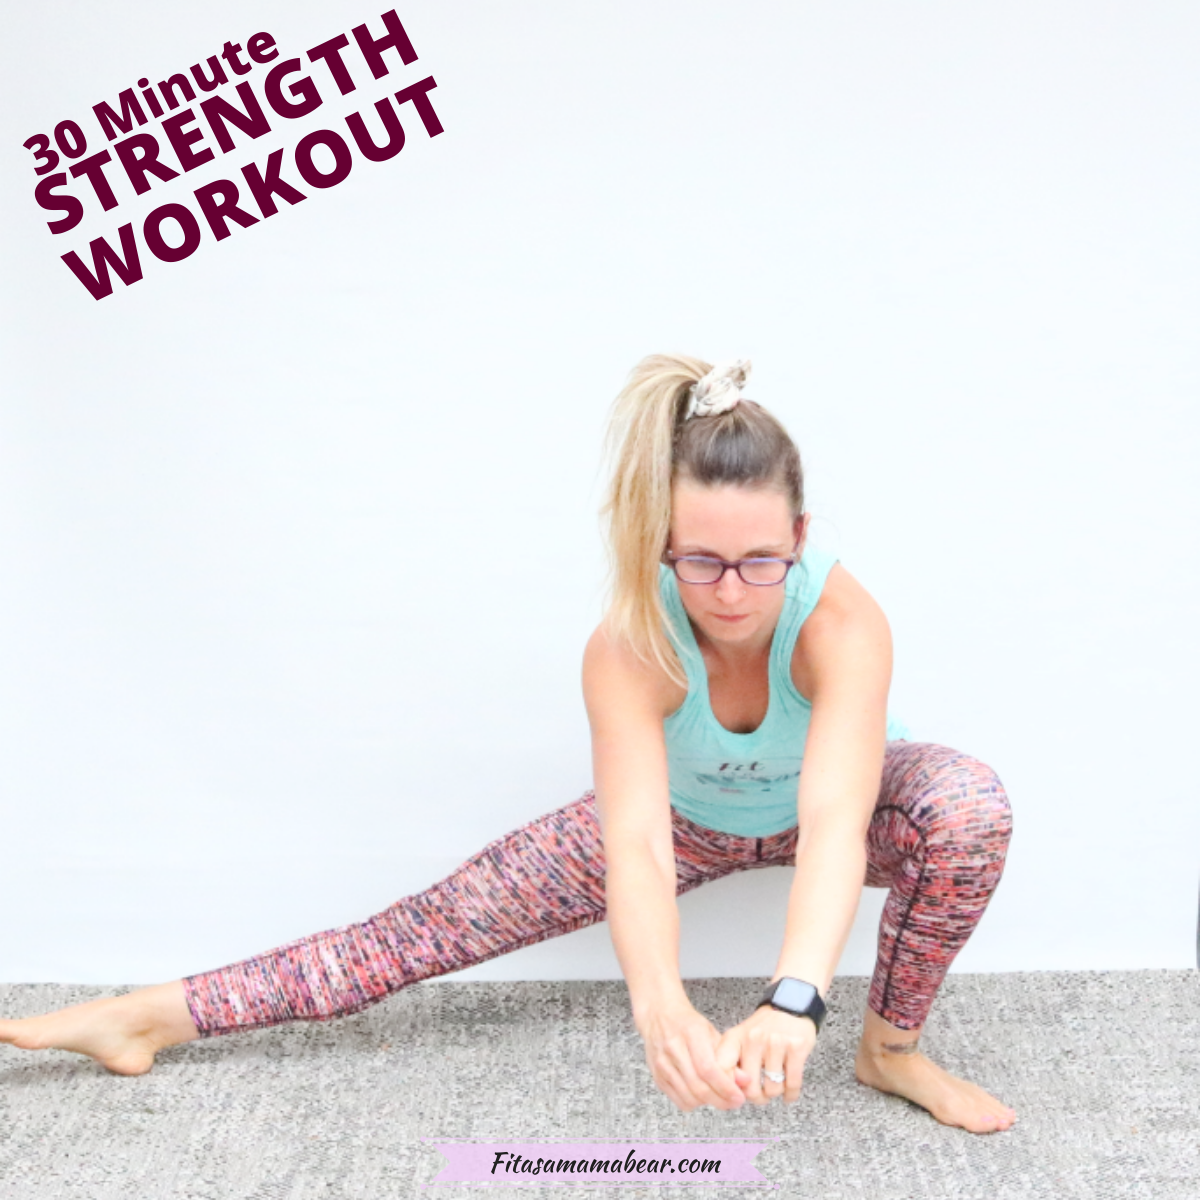 Featured image: woman in bright workout clothes performing a side lunge